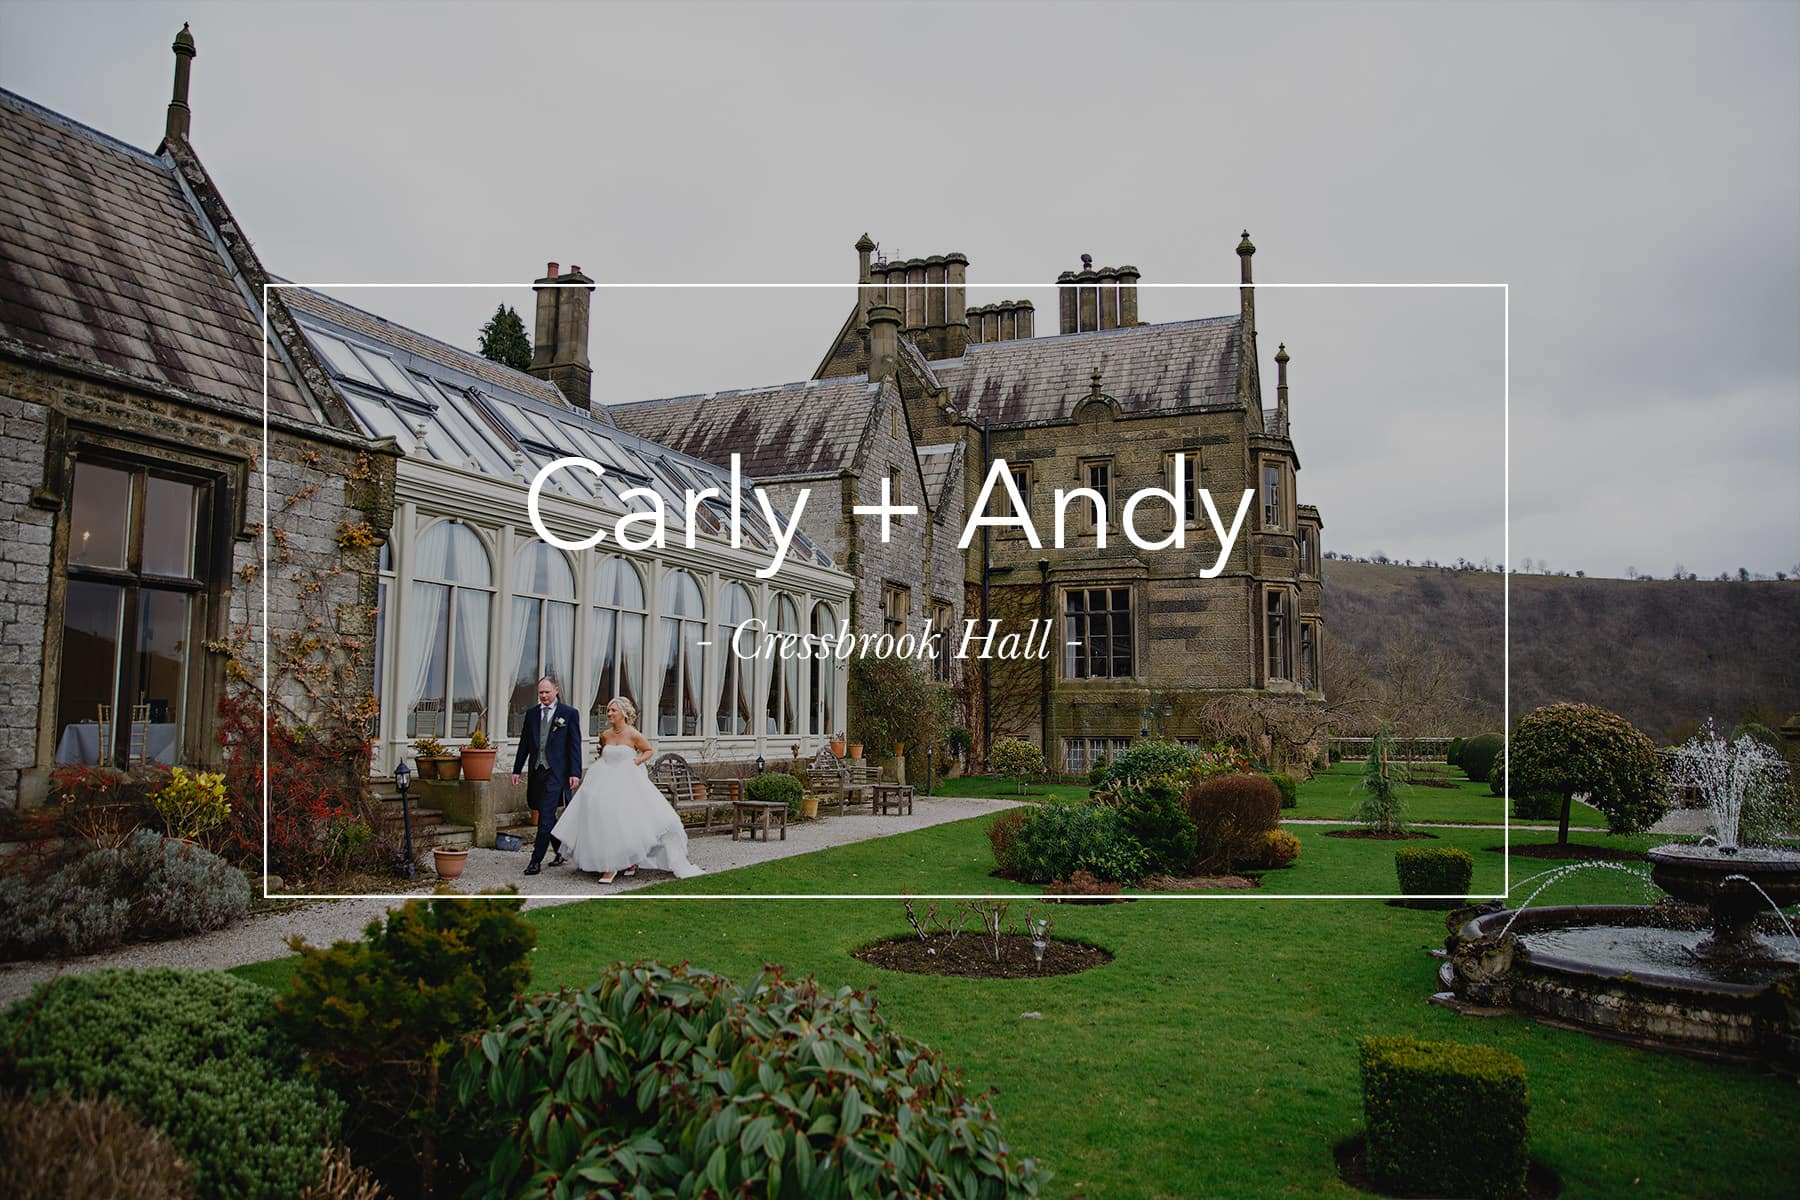 the bride and groom walking in the gardens of Cressbrook Hall in Derbyshire